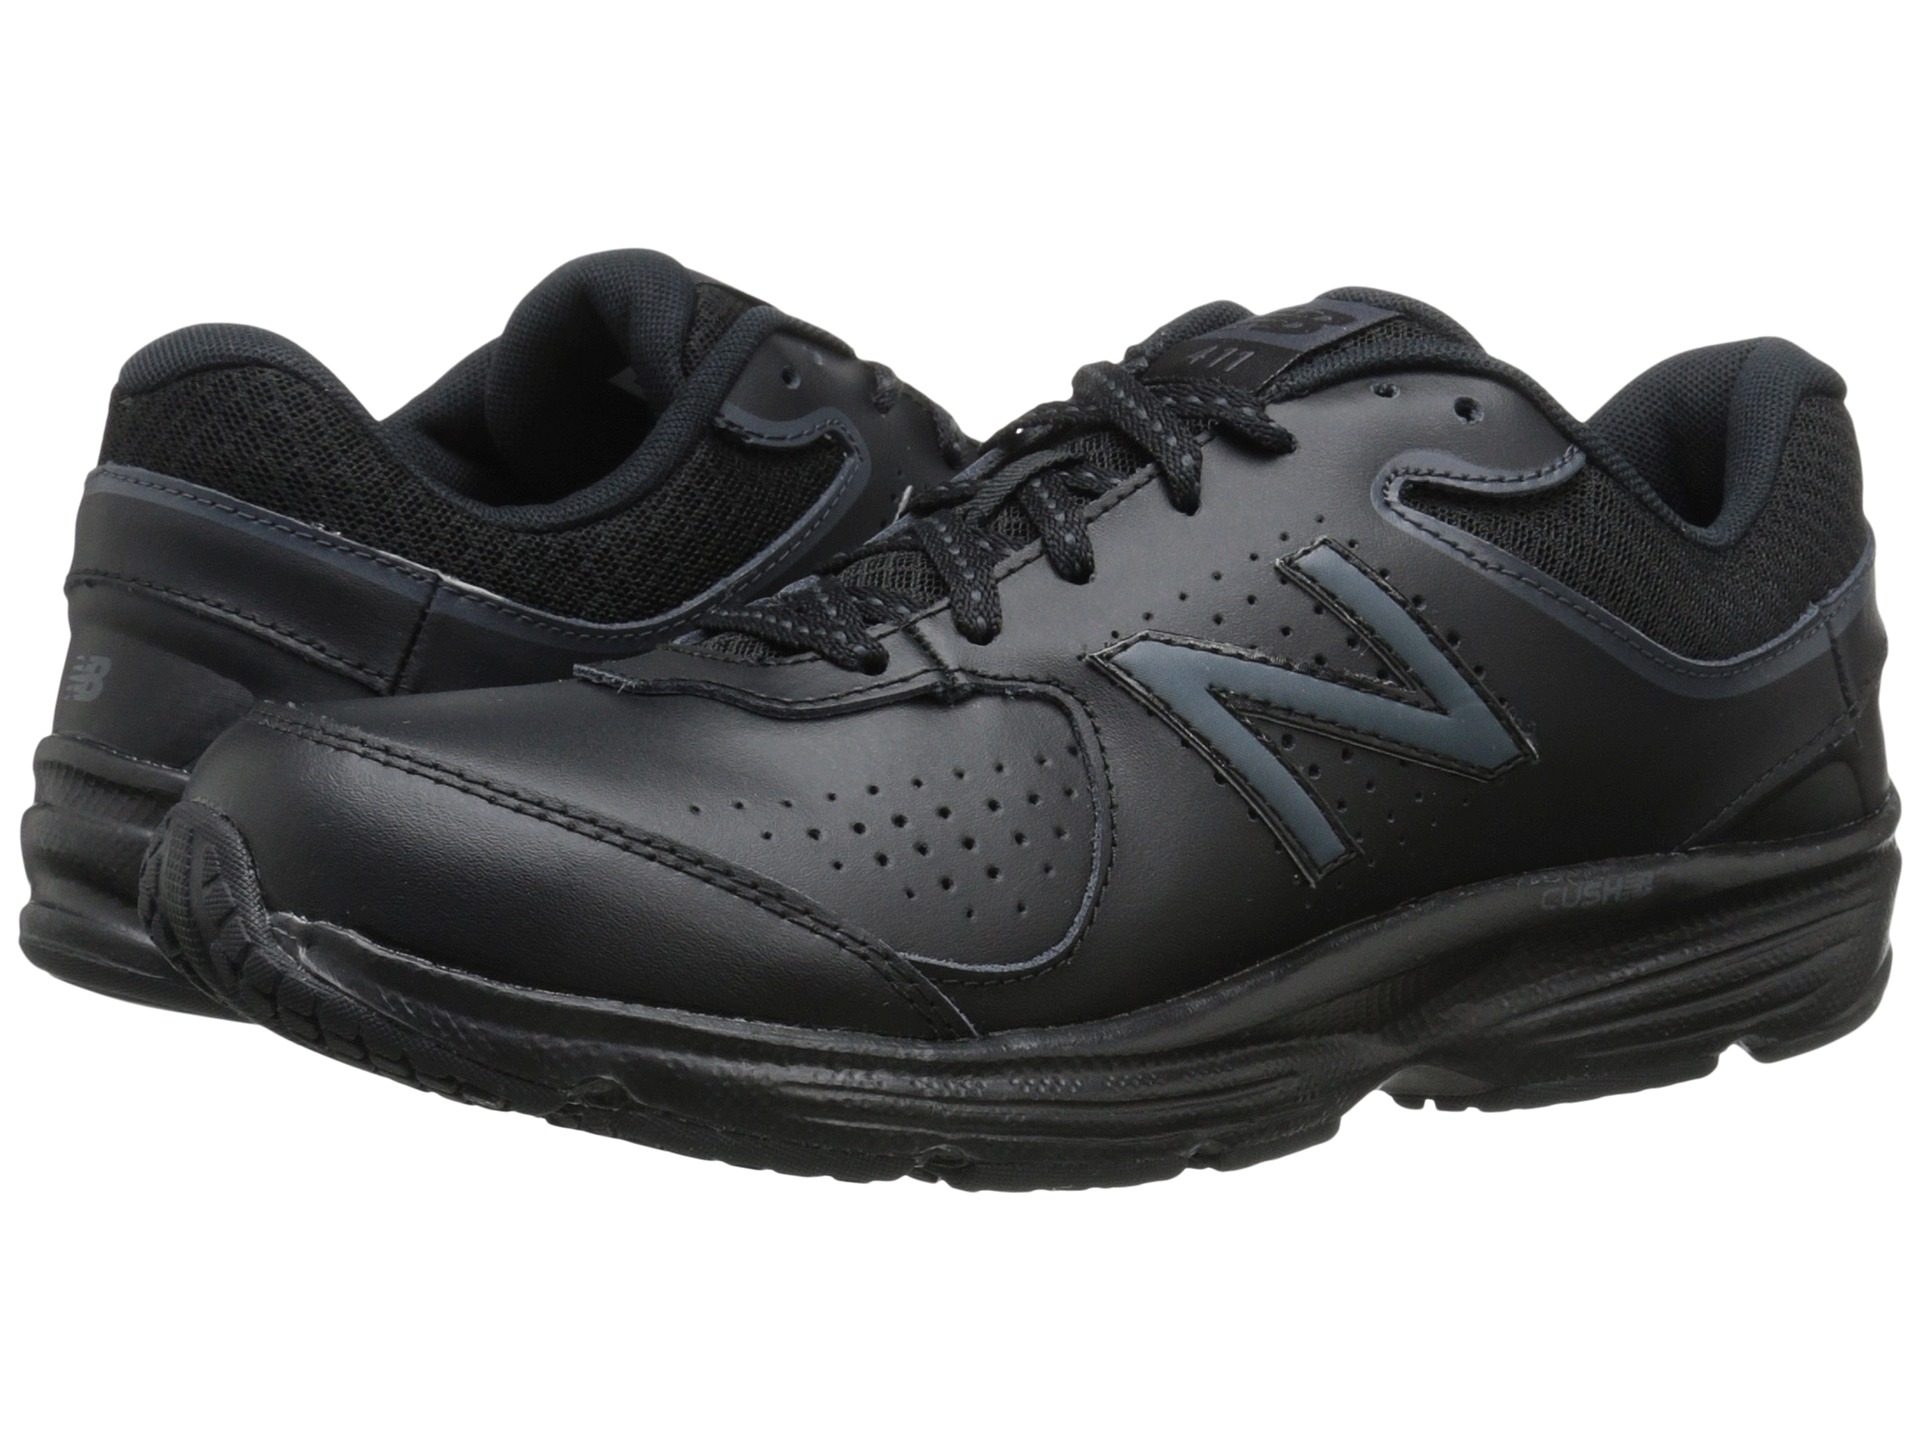 Zappos Womens Winter Shoes Sneakers